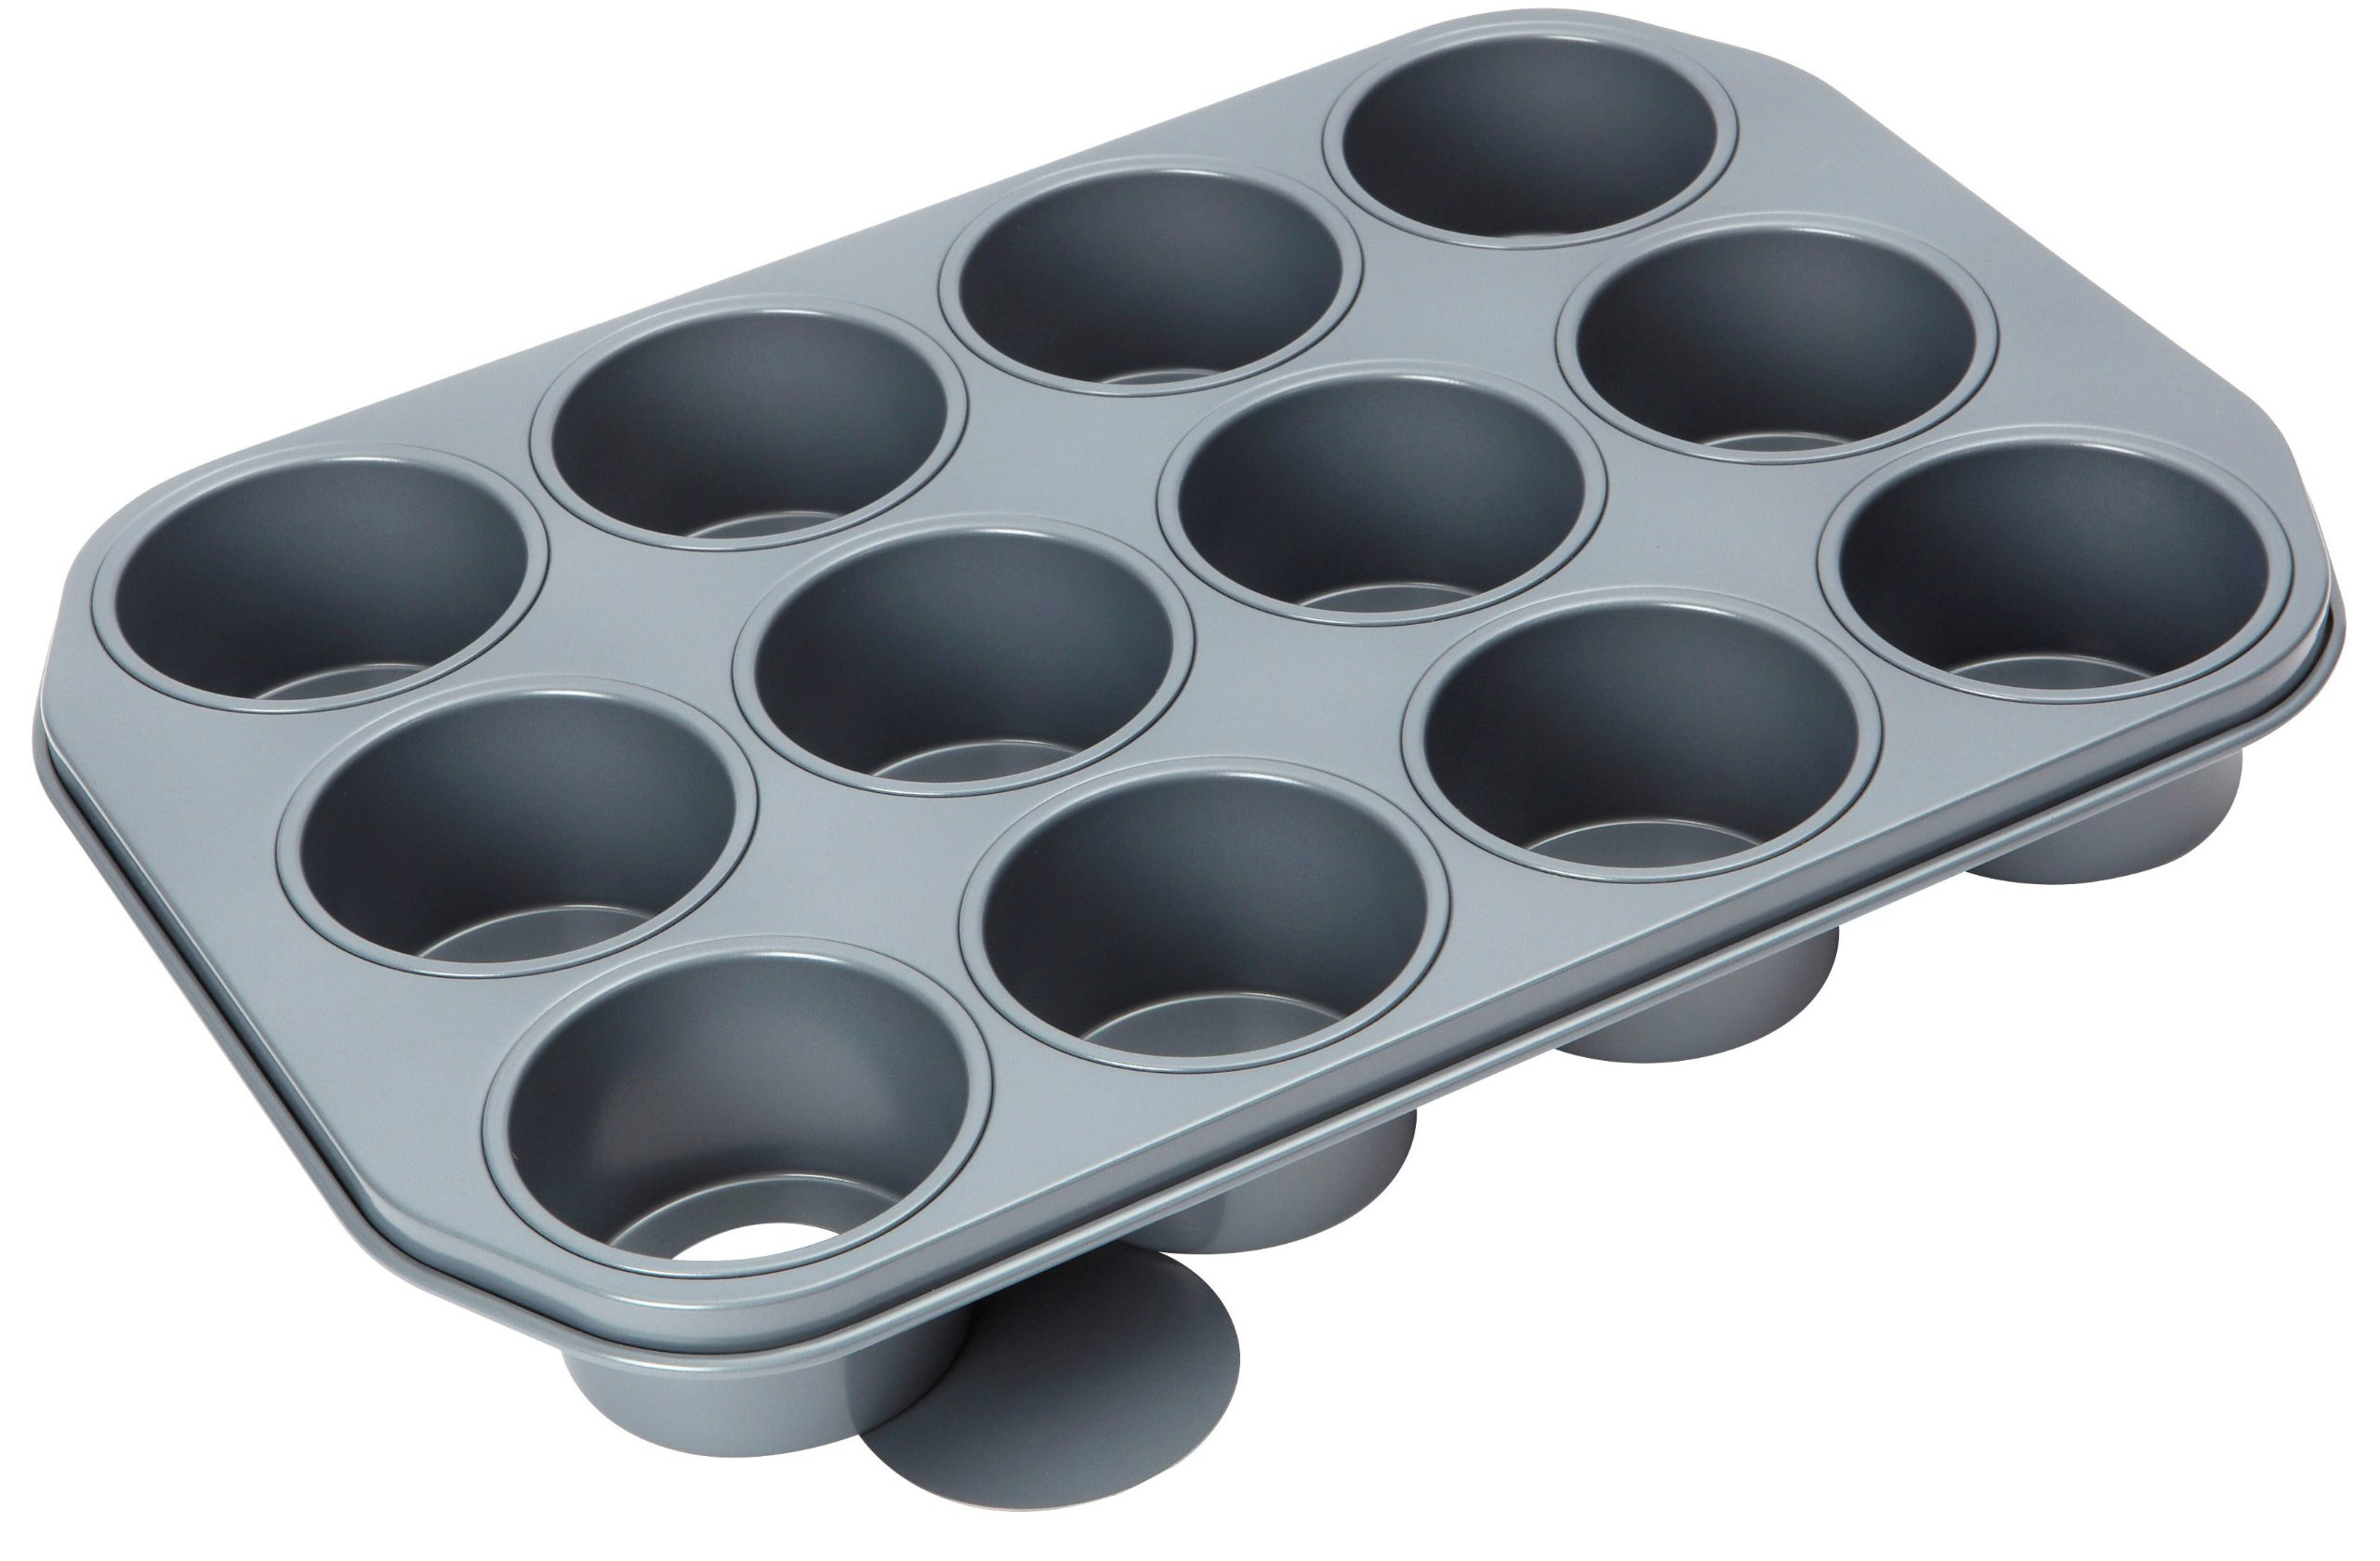 Baker's Pride 12 cup Dessert pan with loose bases (7.5 x 4.5cm cups) by Dexam